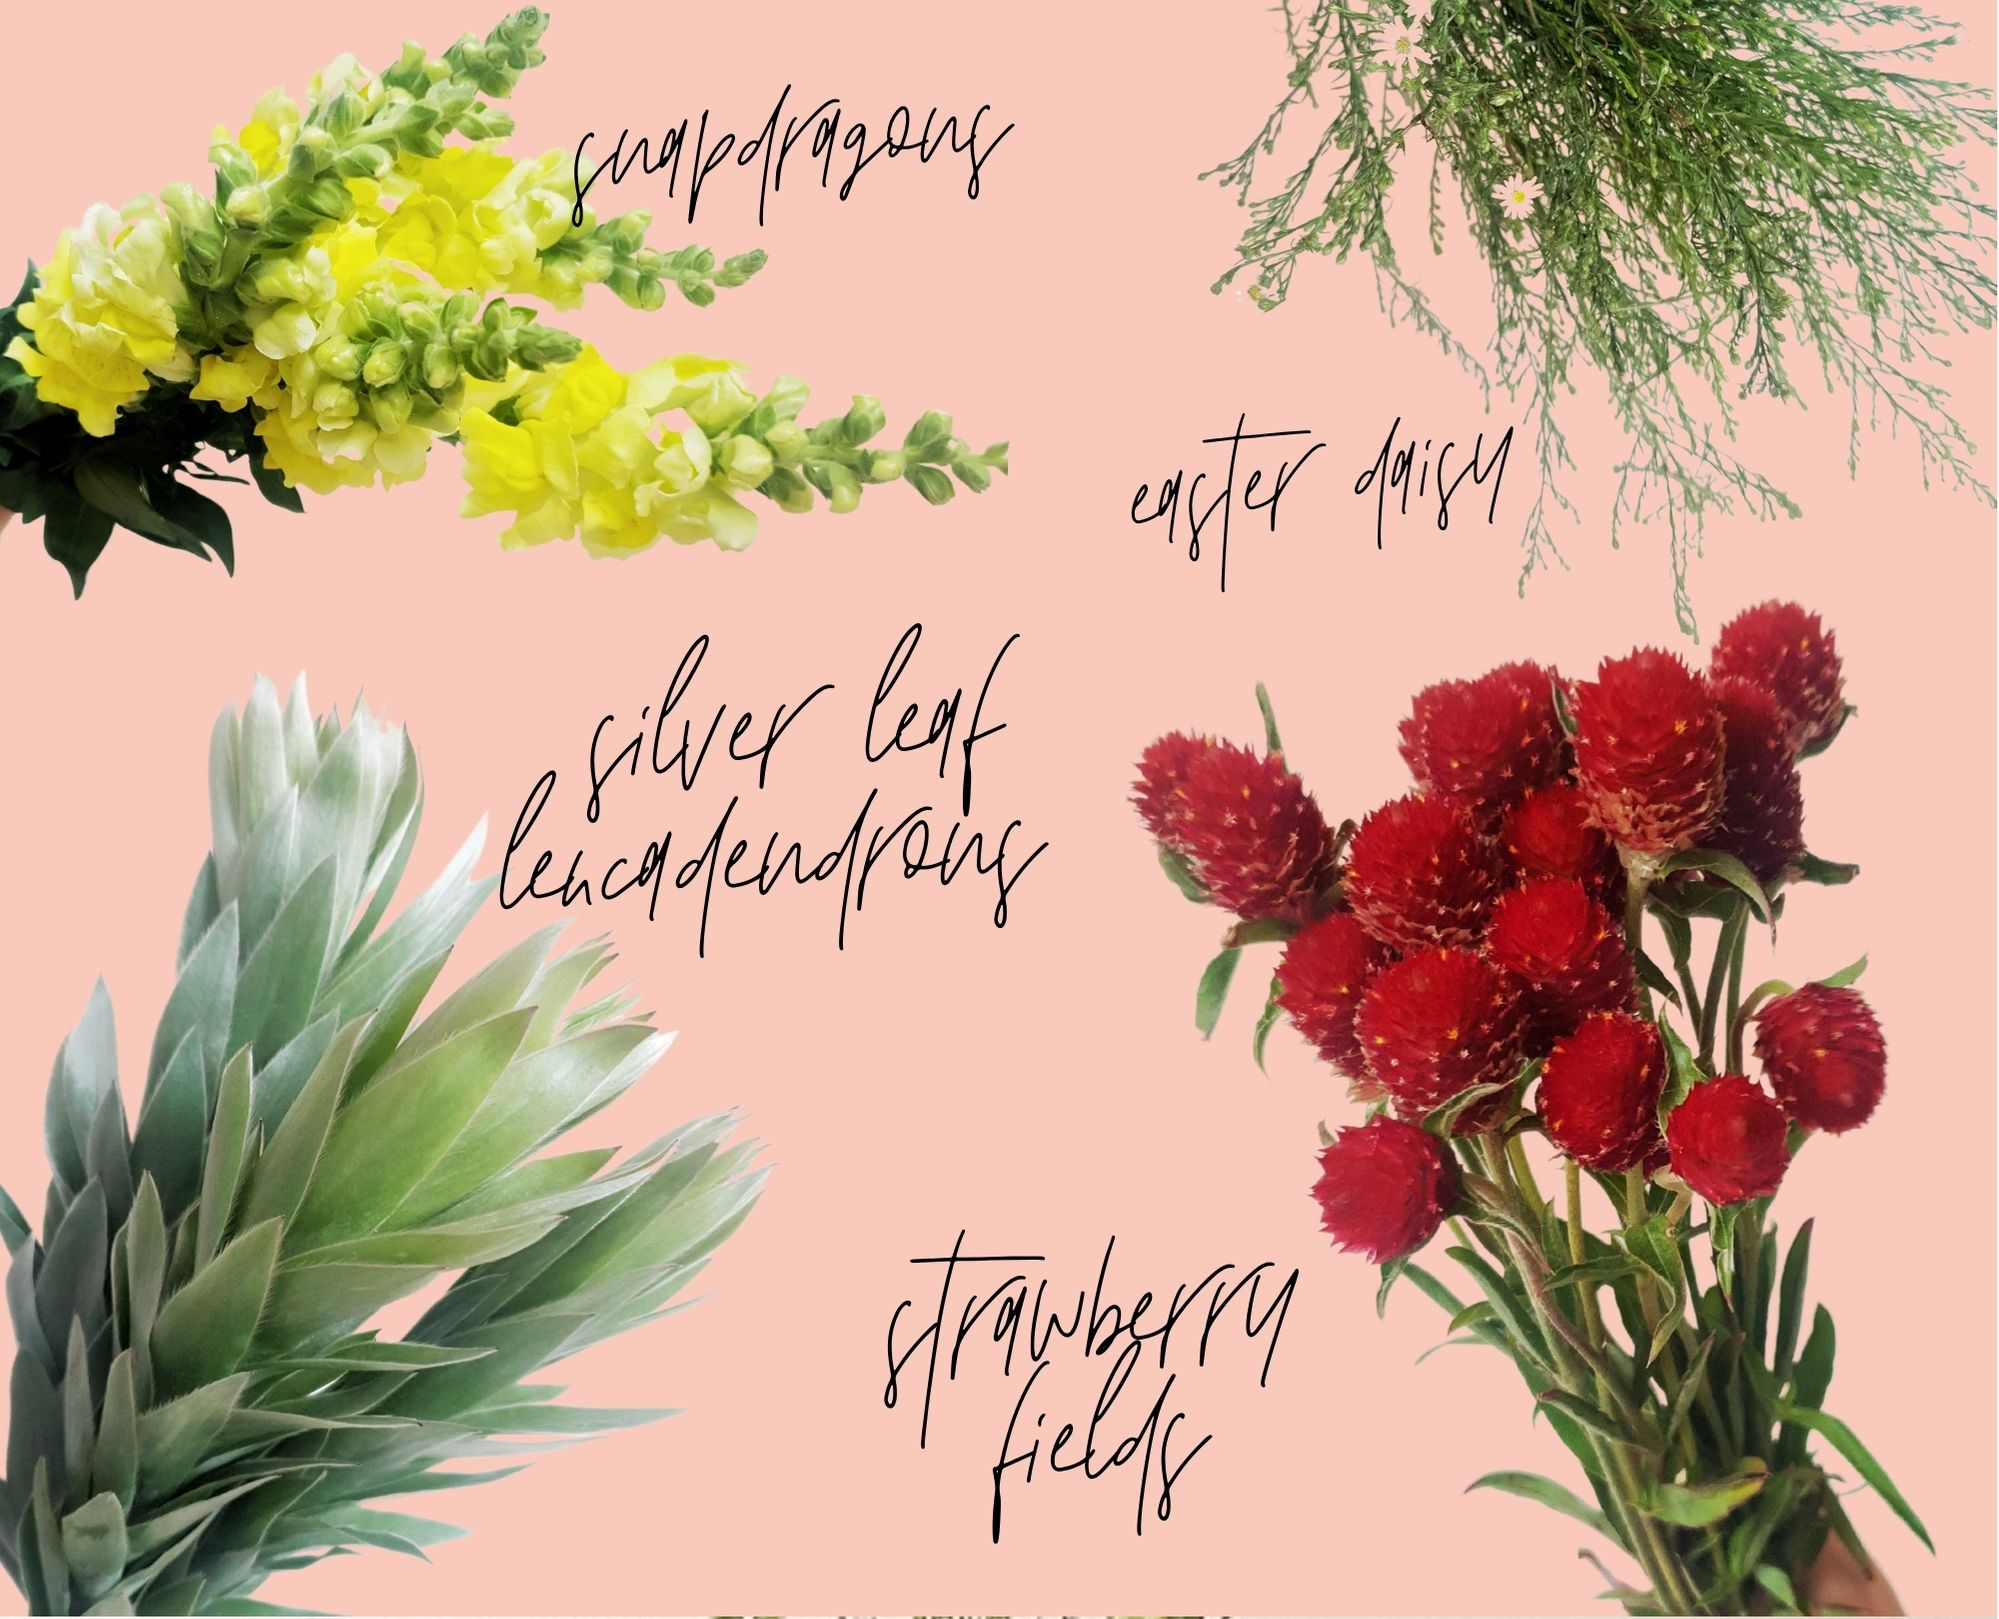 strawberry fields, snapdragons, silver leucadendron